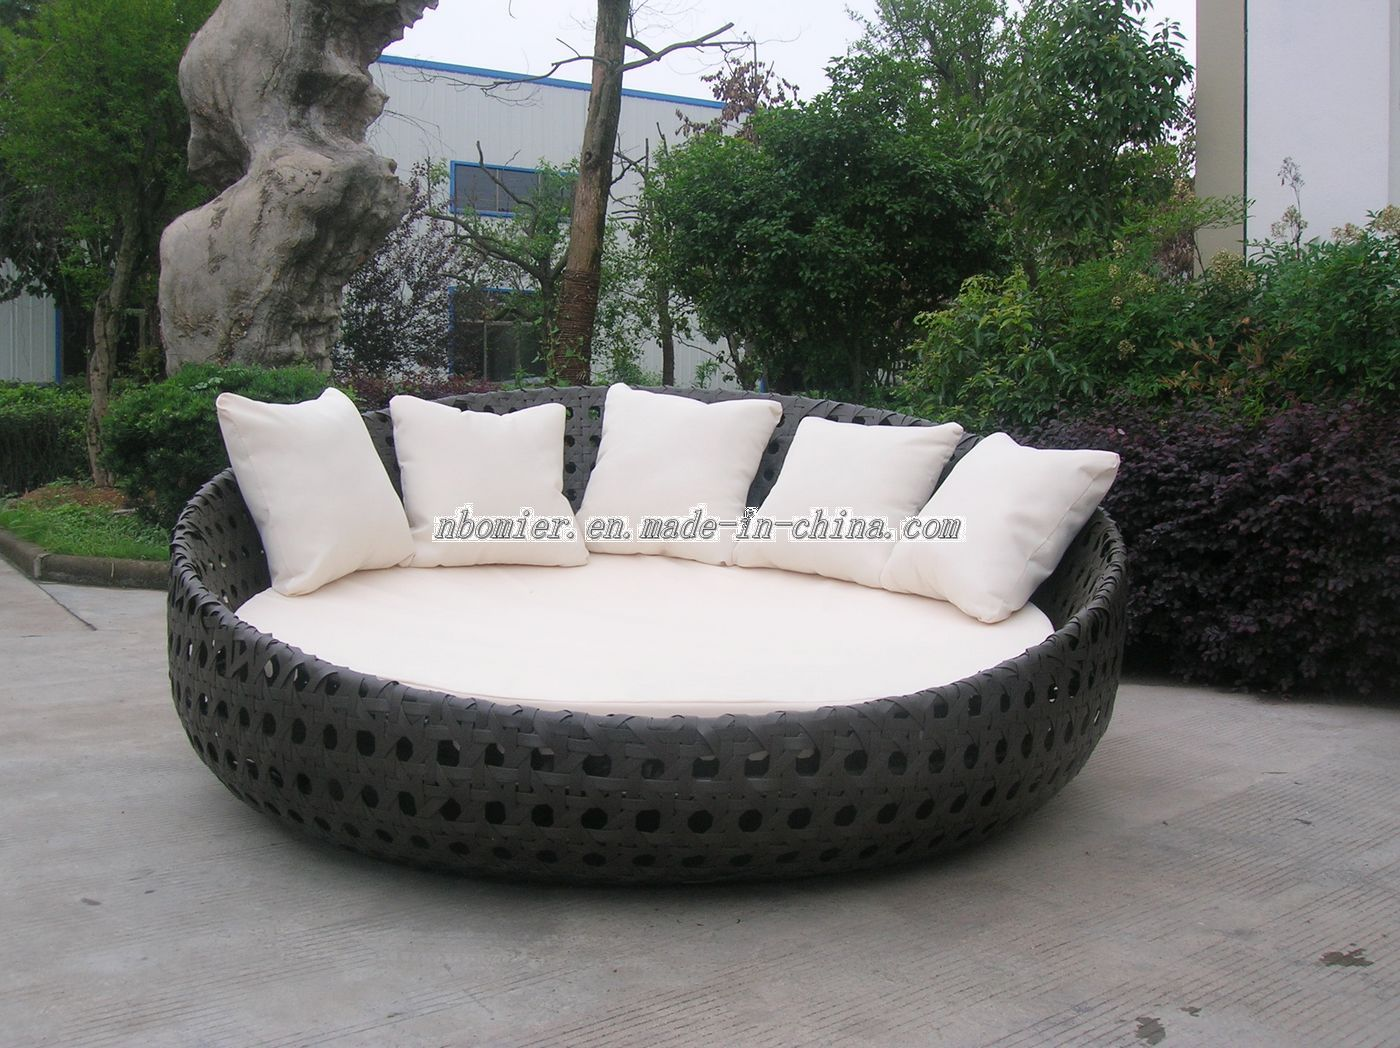 Chairs Unique Round Patio Chair Circular Outdoor Furnitureround Makeovers Wicker Daybeds Furniture Modern With Gallery Of Jpg 1400 1048